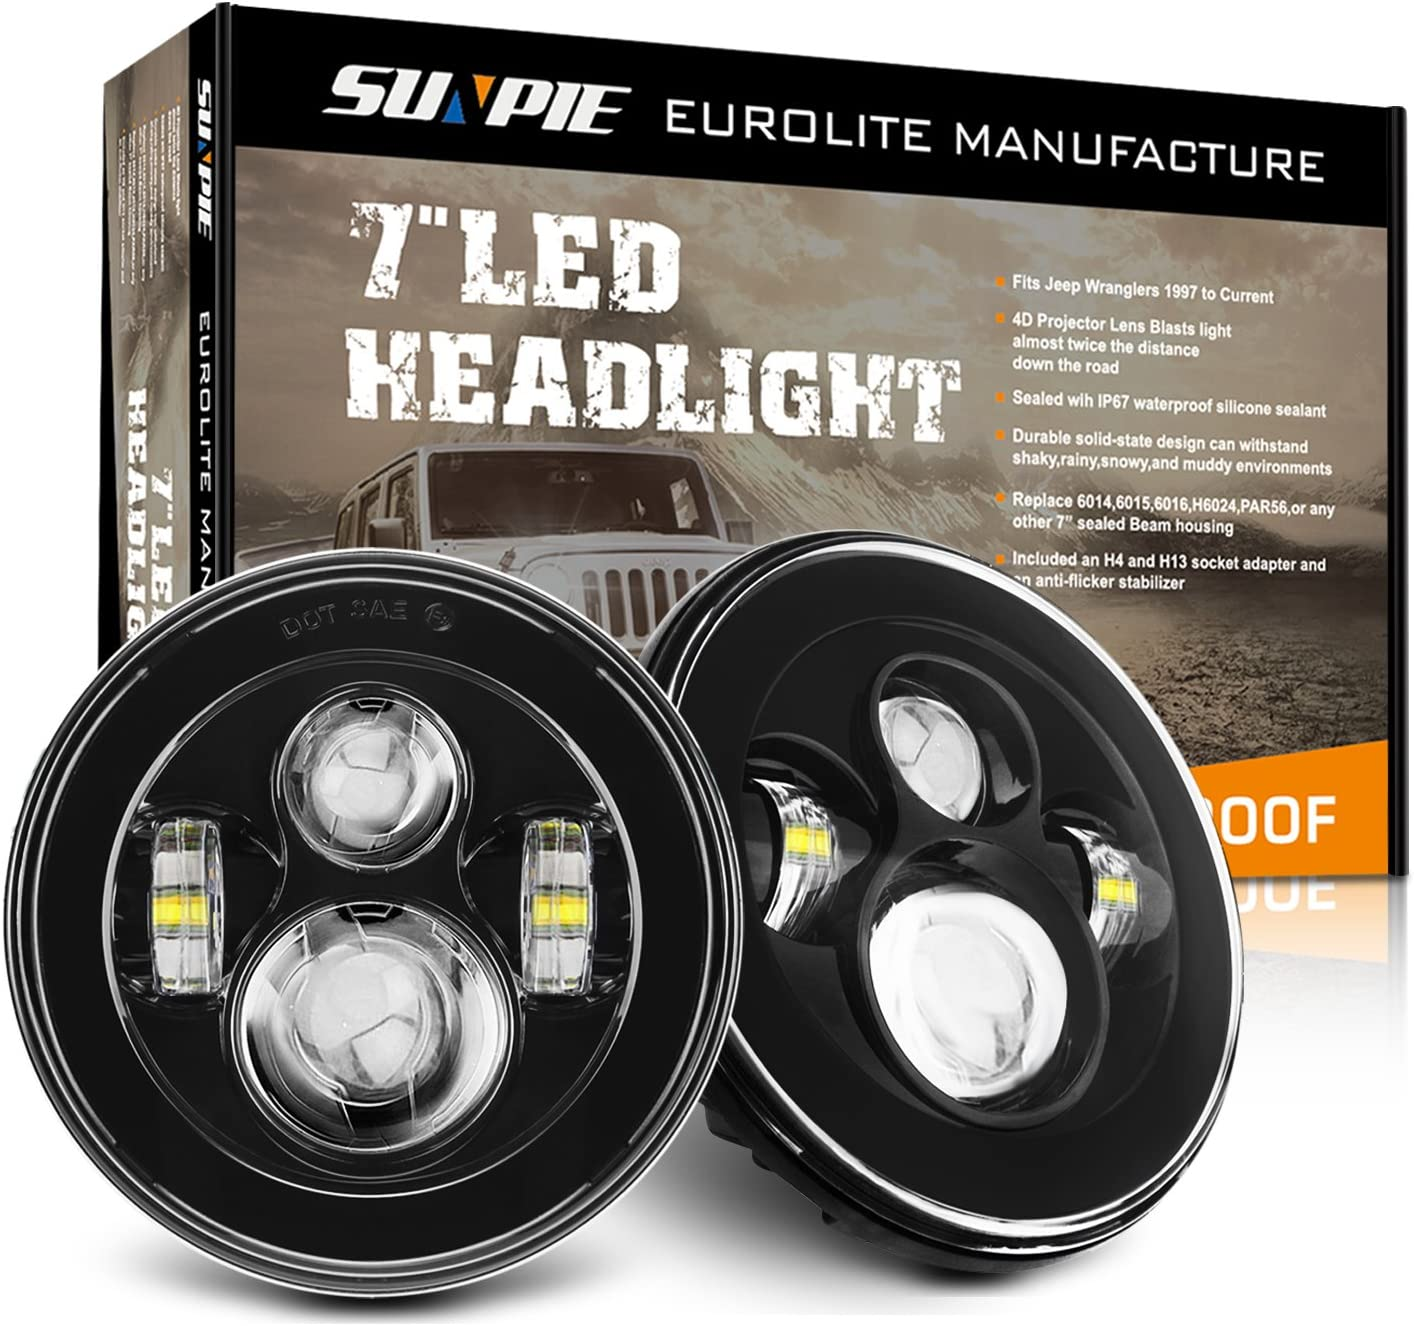 Built in LED CANBUS SUNPIE Single 7 inch LED Headlights with Halo White DRL /& Amber Turn Signal for Jeep Wrangler JK LJ CJ Hummer H1 H2